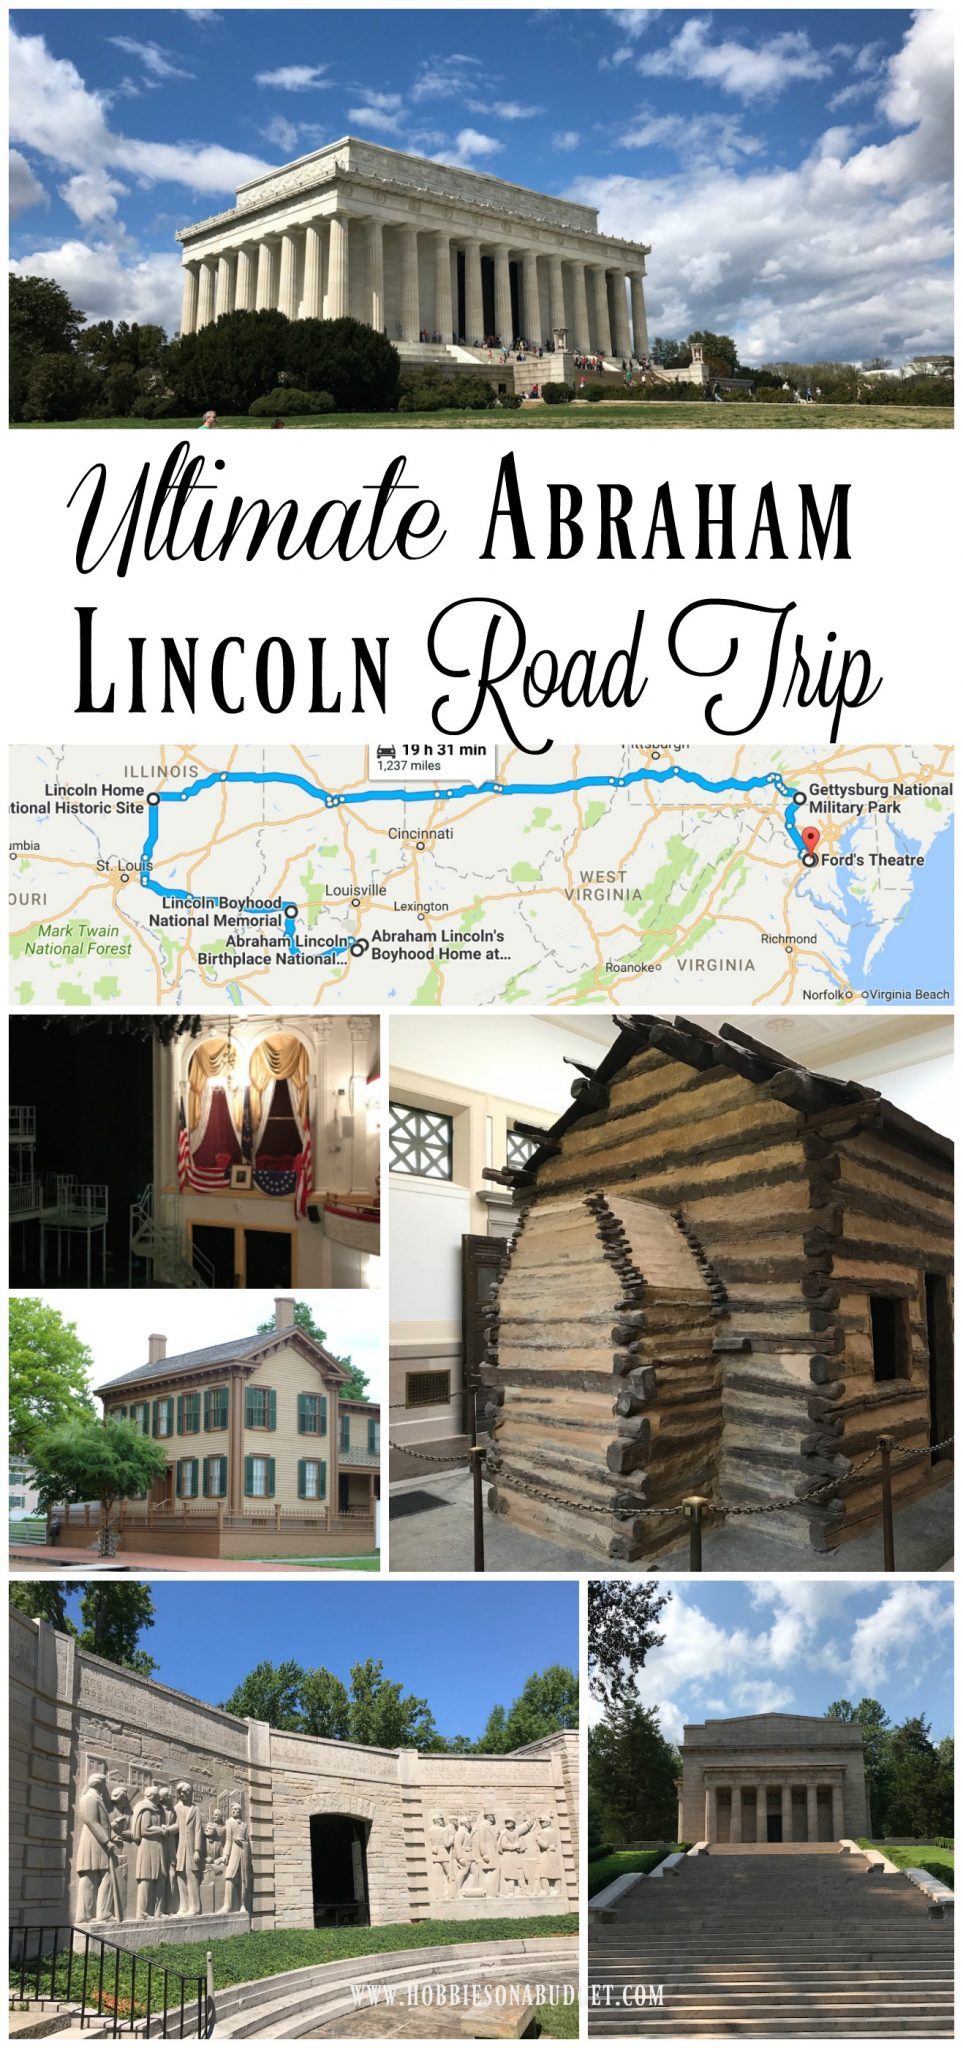 Ultimate Abraham Lincoln Road Trip